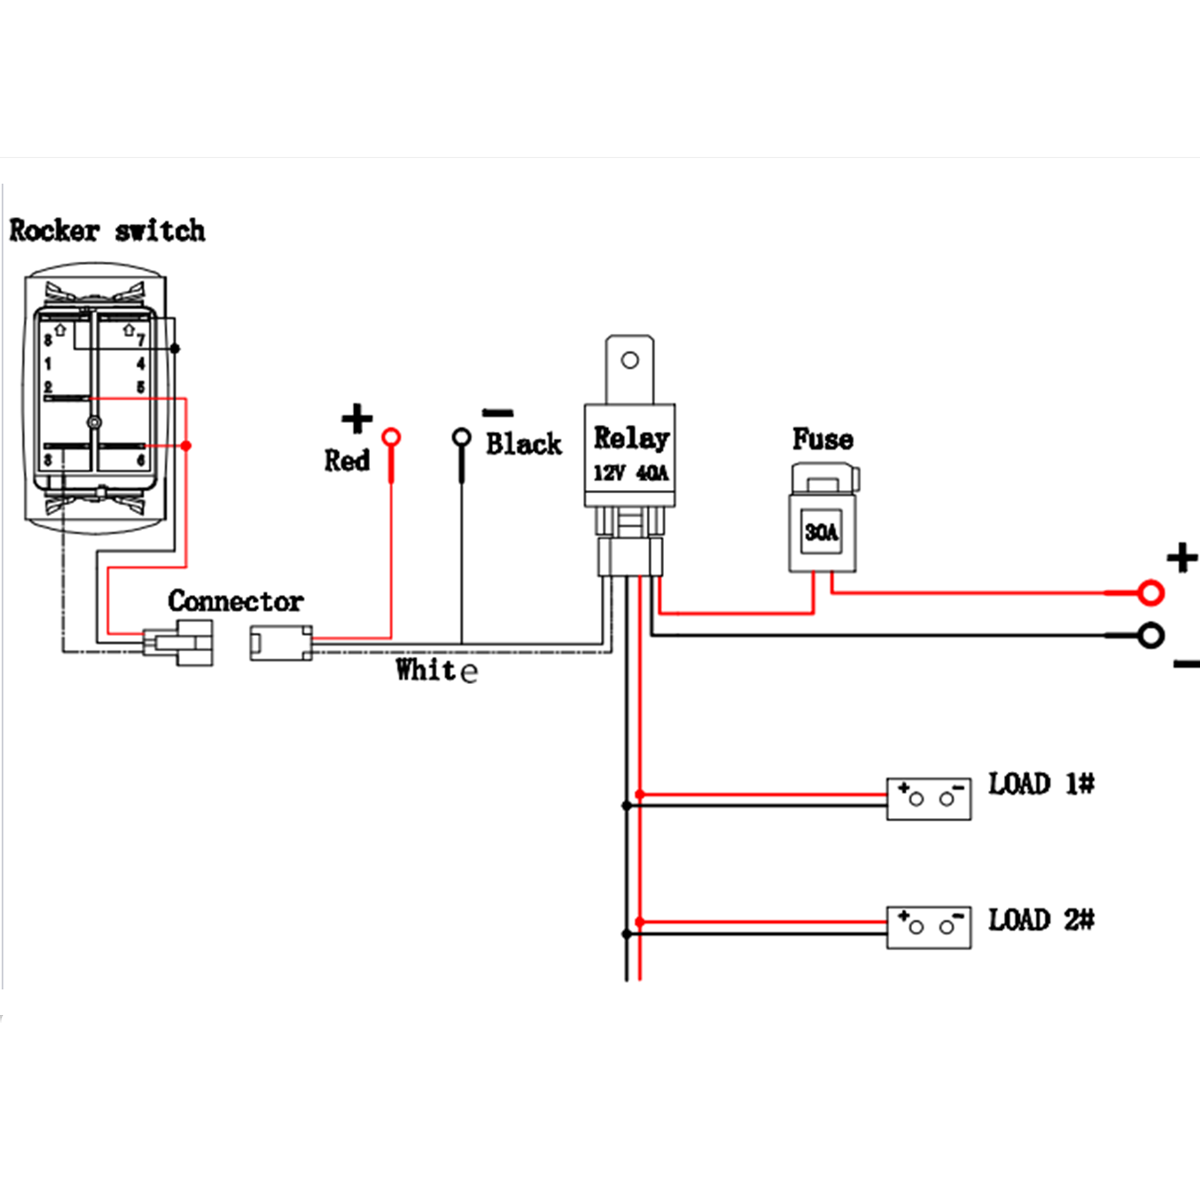 Dorman 84944 8 Pin Rocker Switch 12 Volt Wiring Diagram